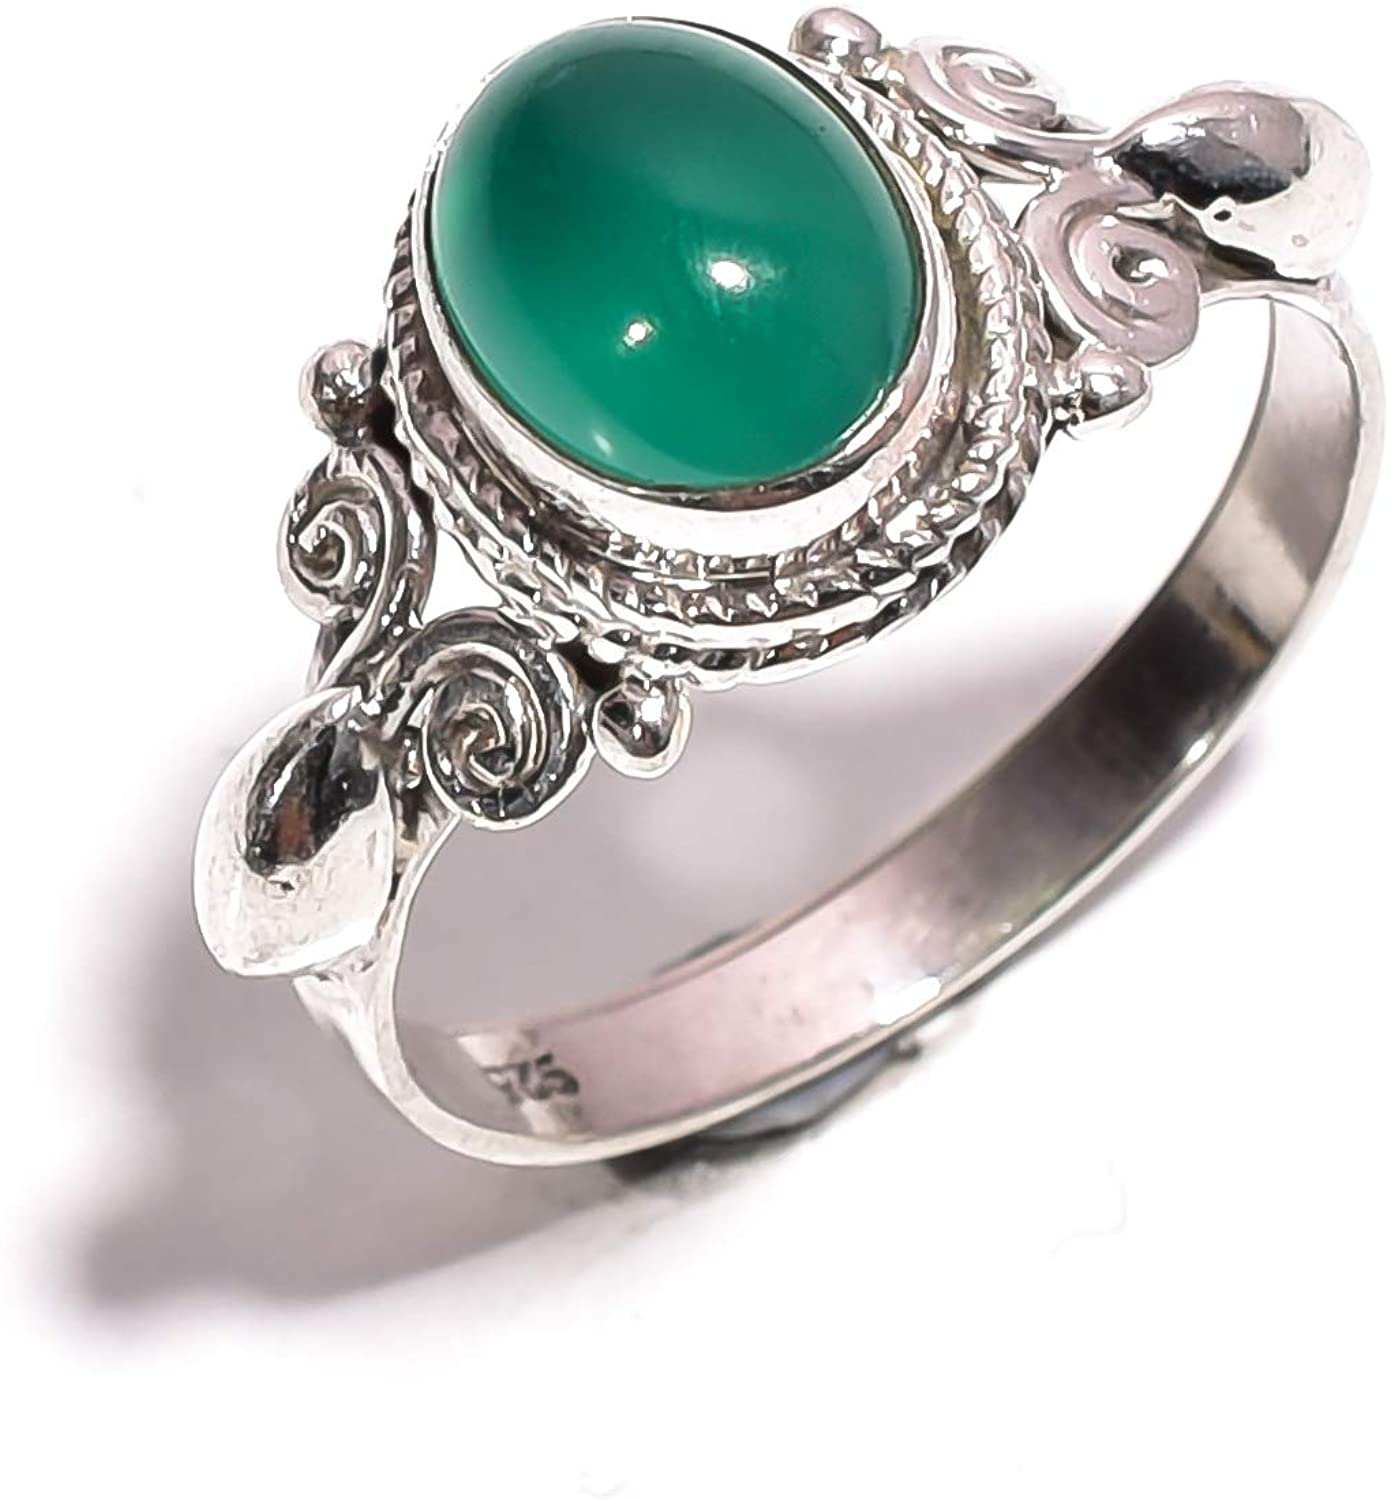 Mughal gems & jewellery 925 Sterling Silver Ring Natural Green Chalcedony Gemstone Fine Jewelry Ring for Women & Girls Size 8.25 U.S (ZR-748